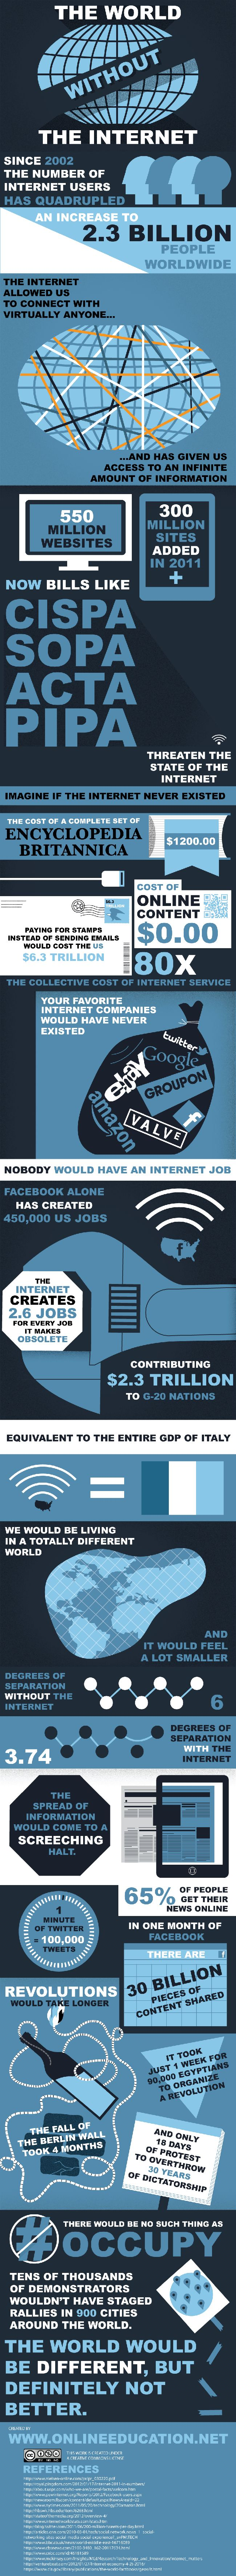 How would your life transform if we lived in a world without internet? http: